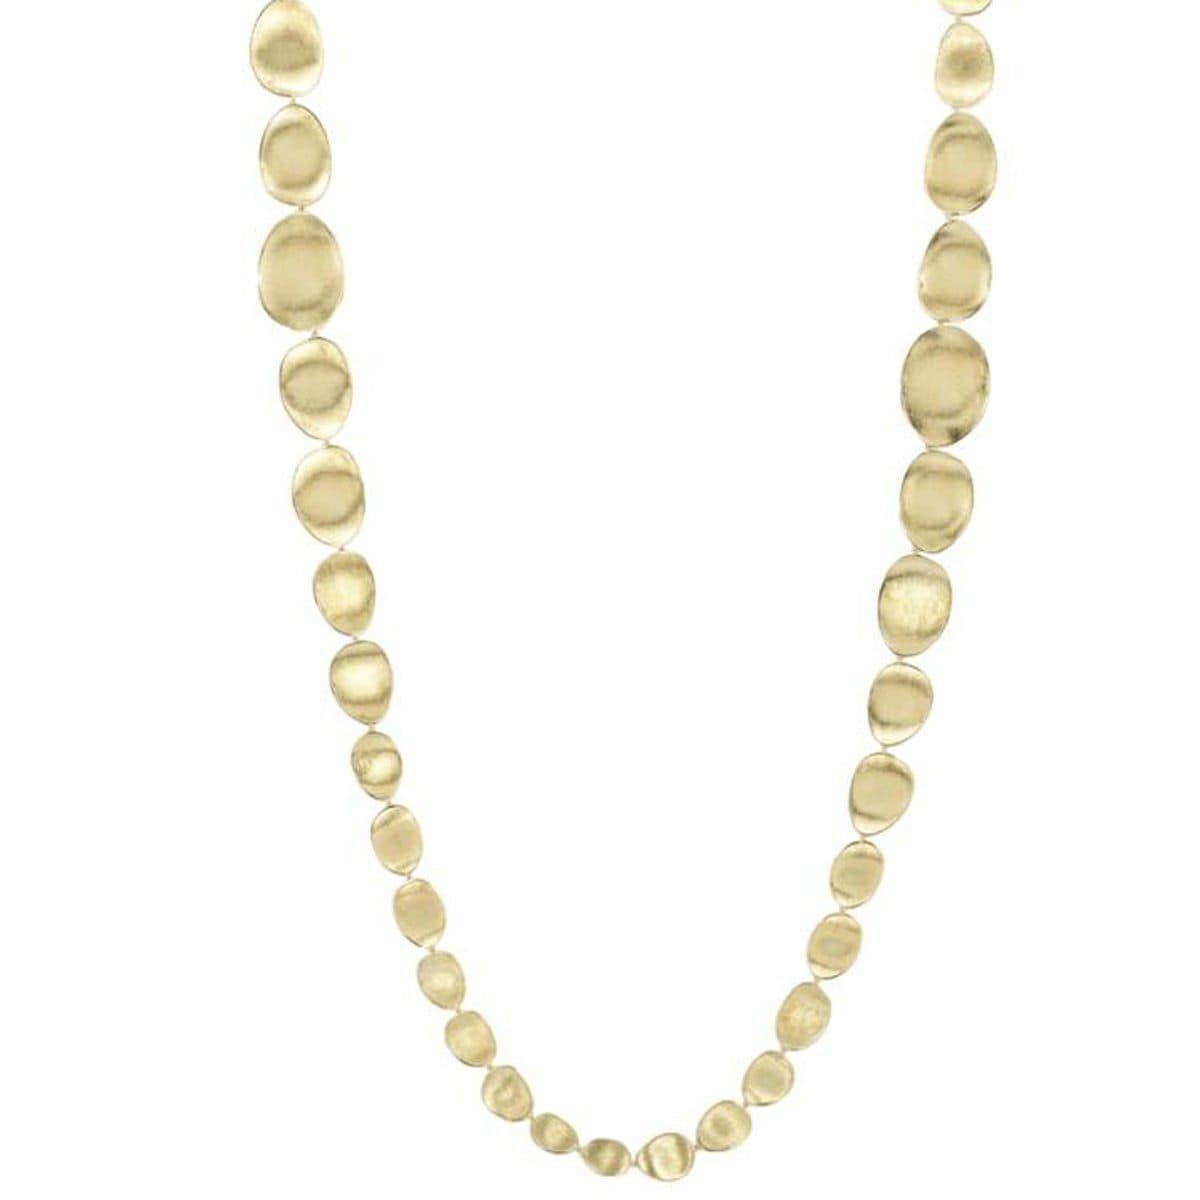 "18K Lunaria Medium Double Wave Necklace - CB1885 Y 39.25""-Marco Bicego-Renee Taylor Gallery"